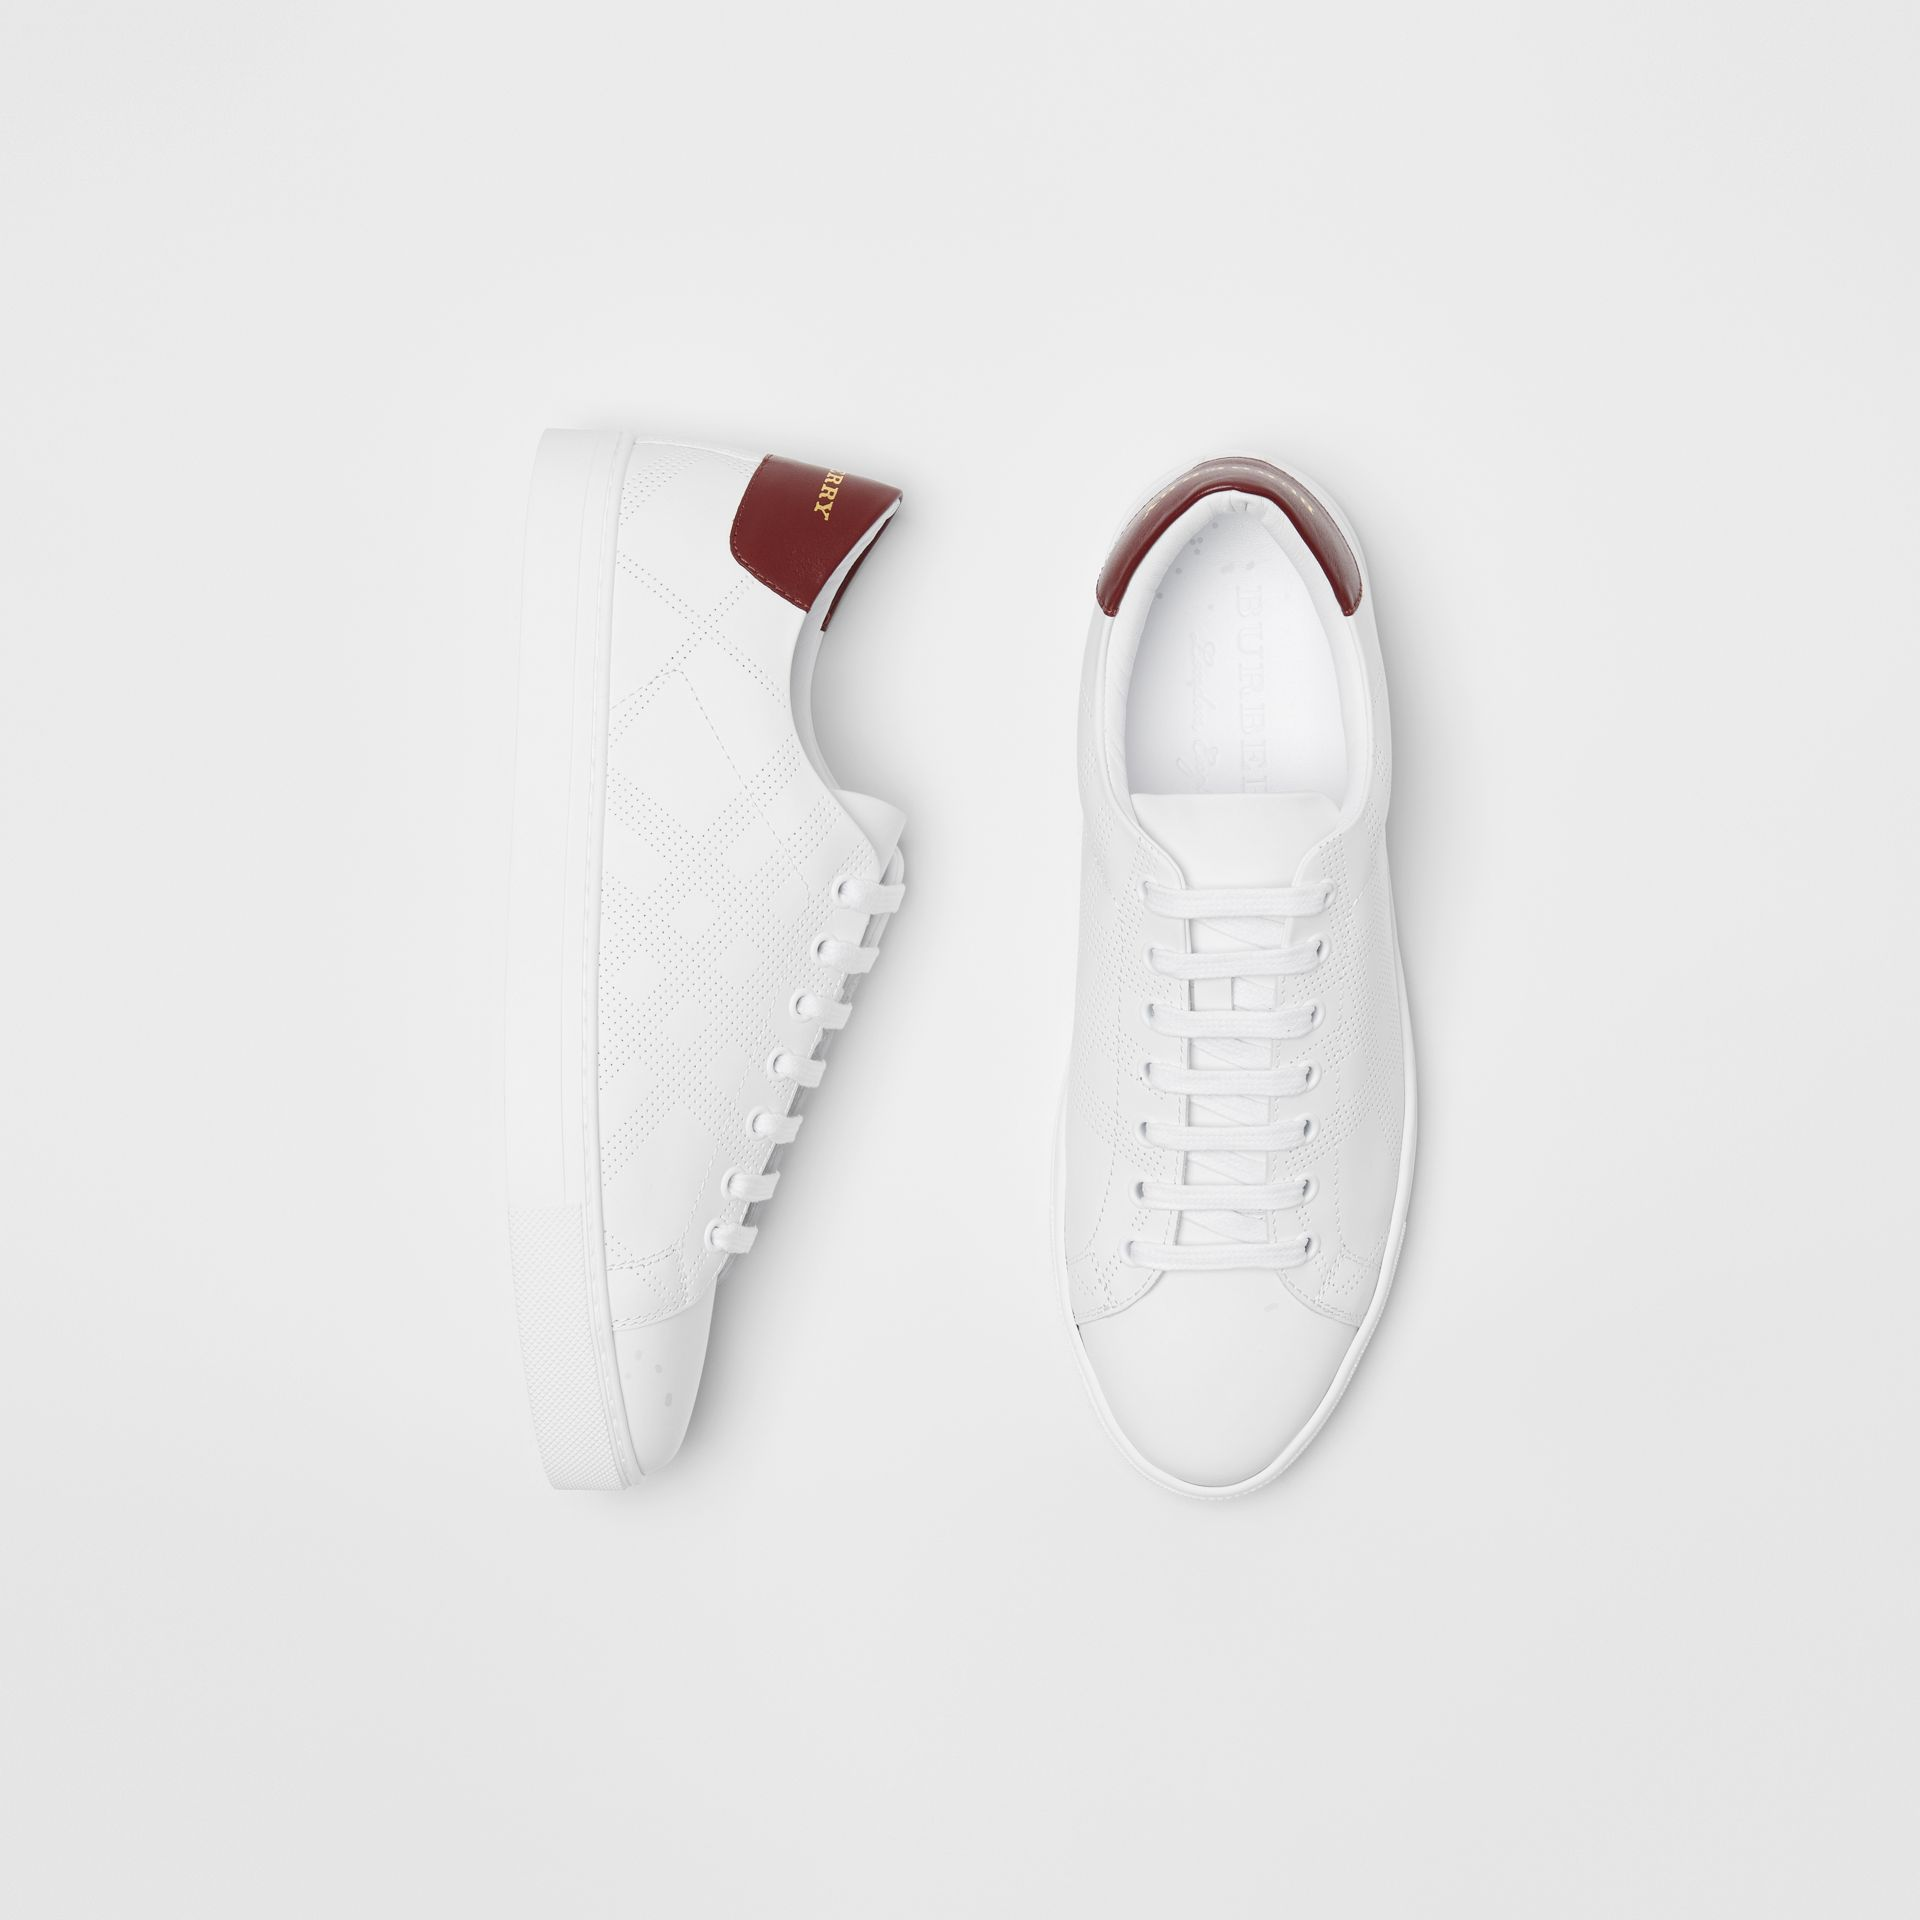 Perforated Check Leather Sneakers by